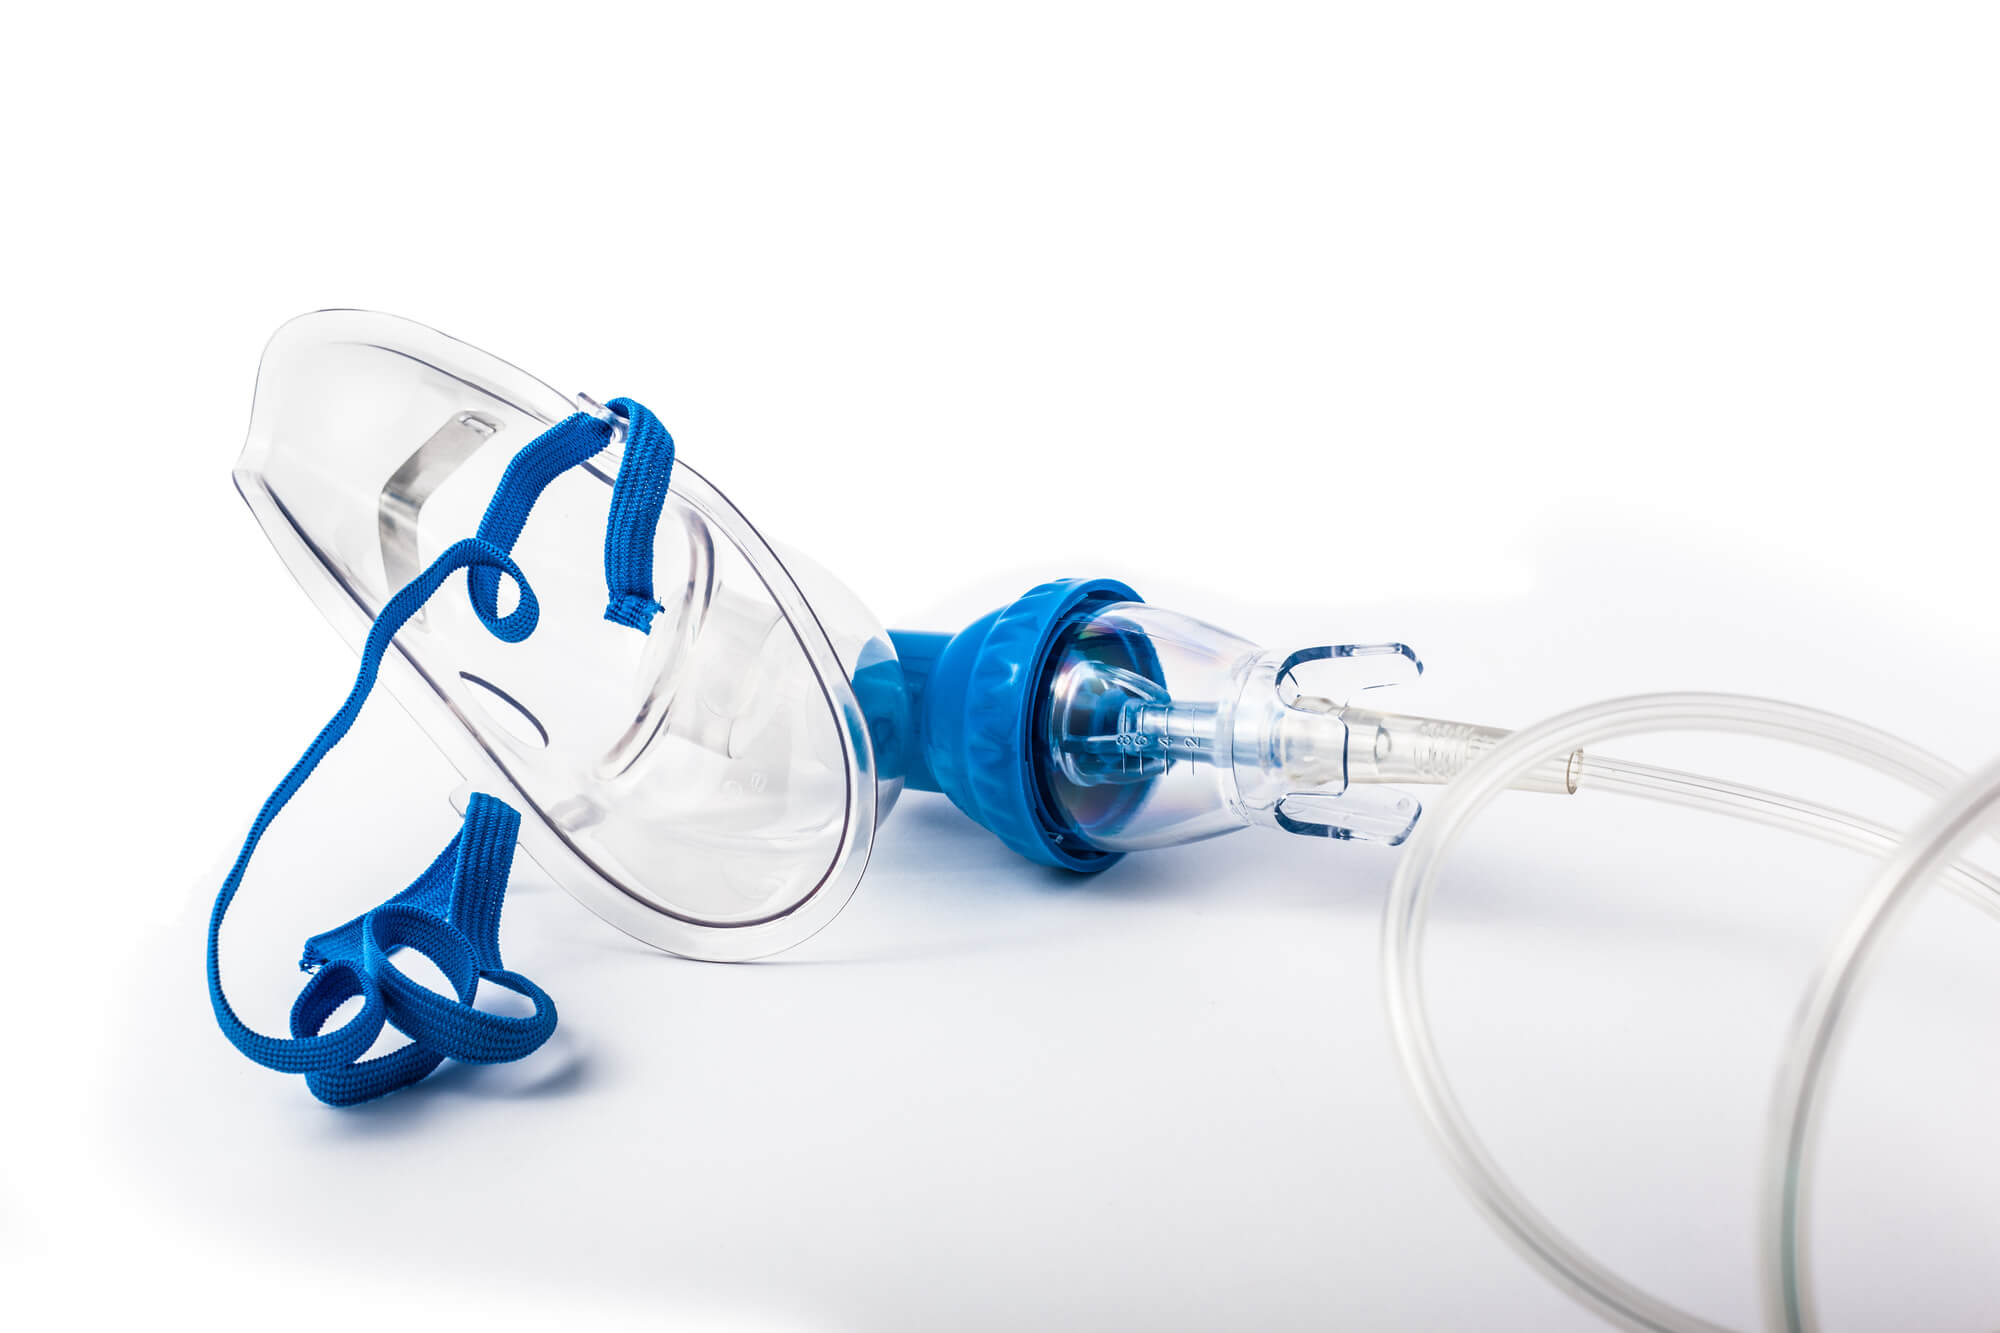 paraphernalia used by a nitrous oxide dentist in Naples